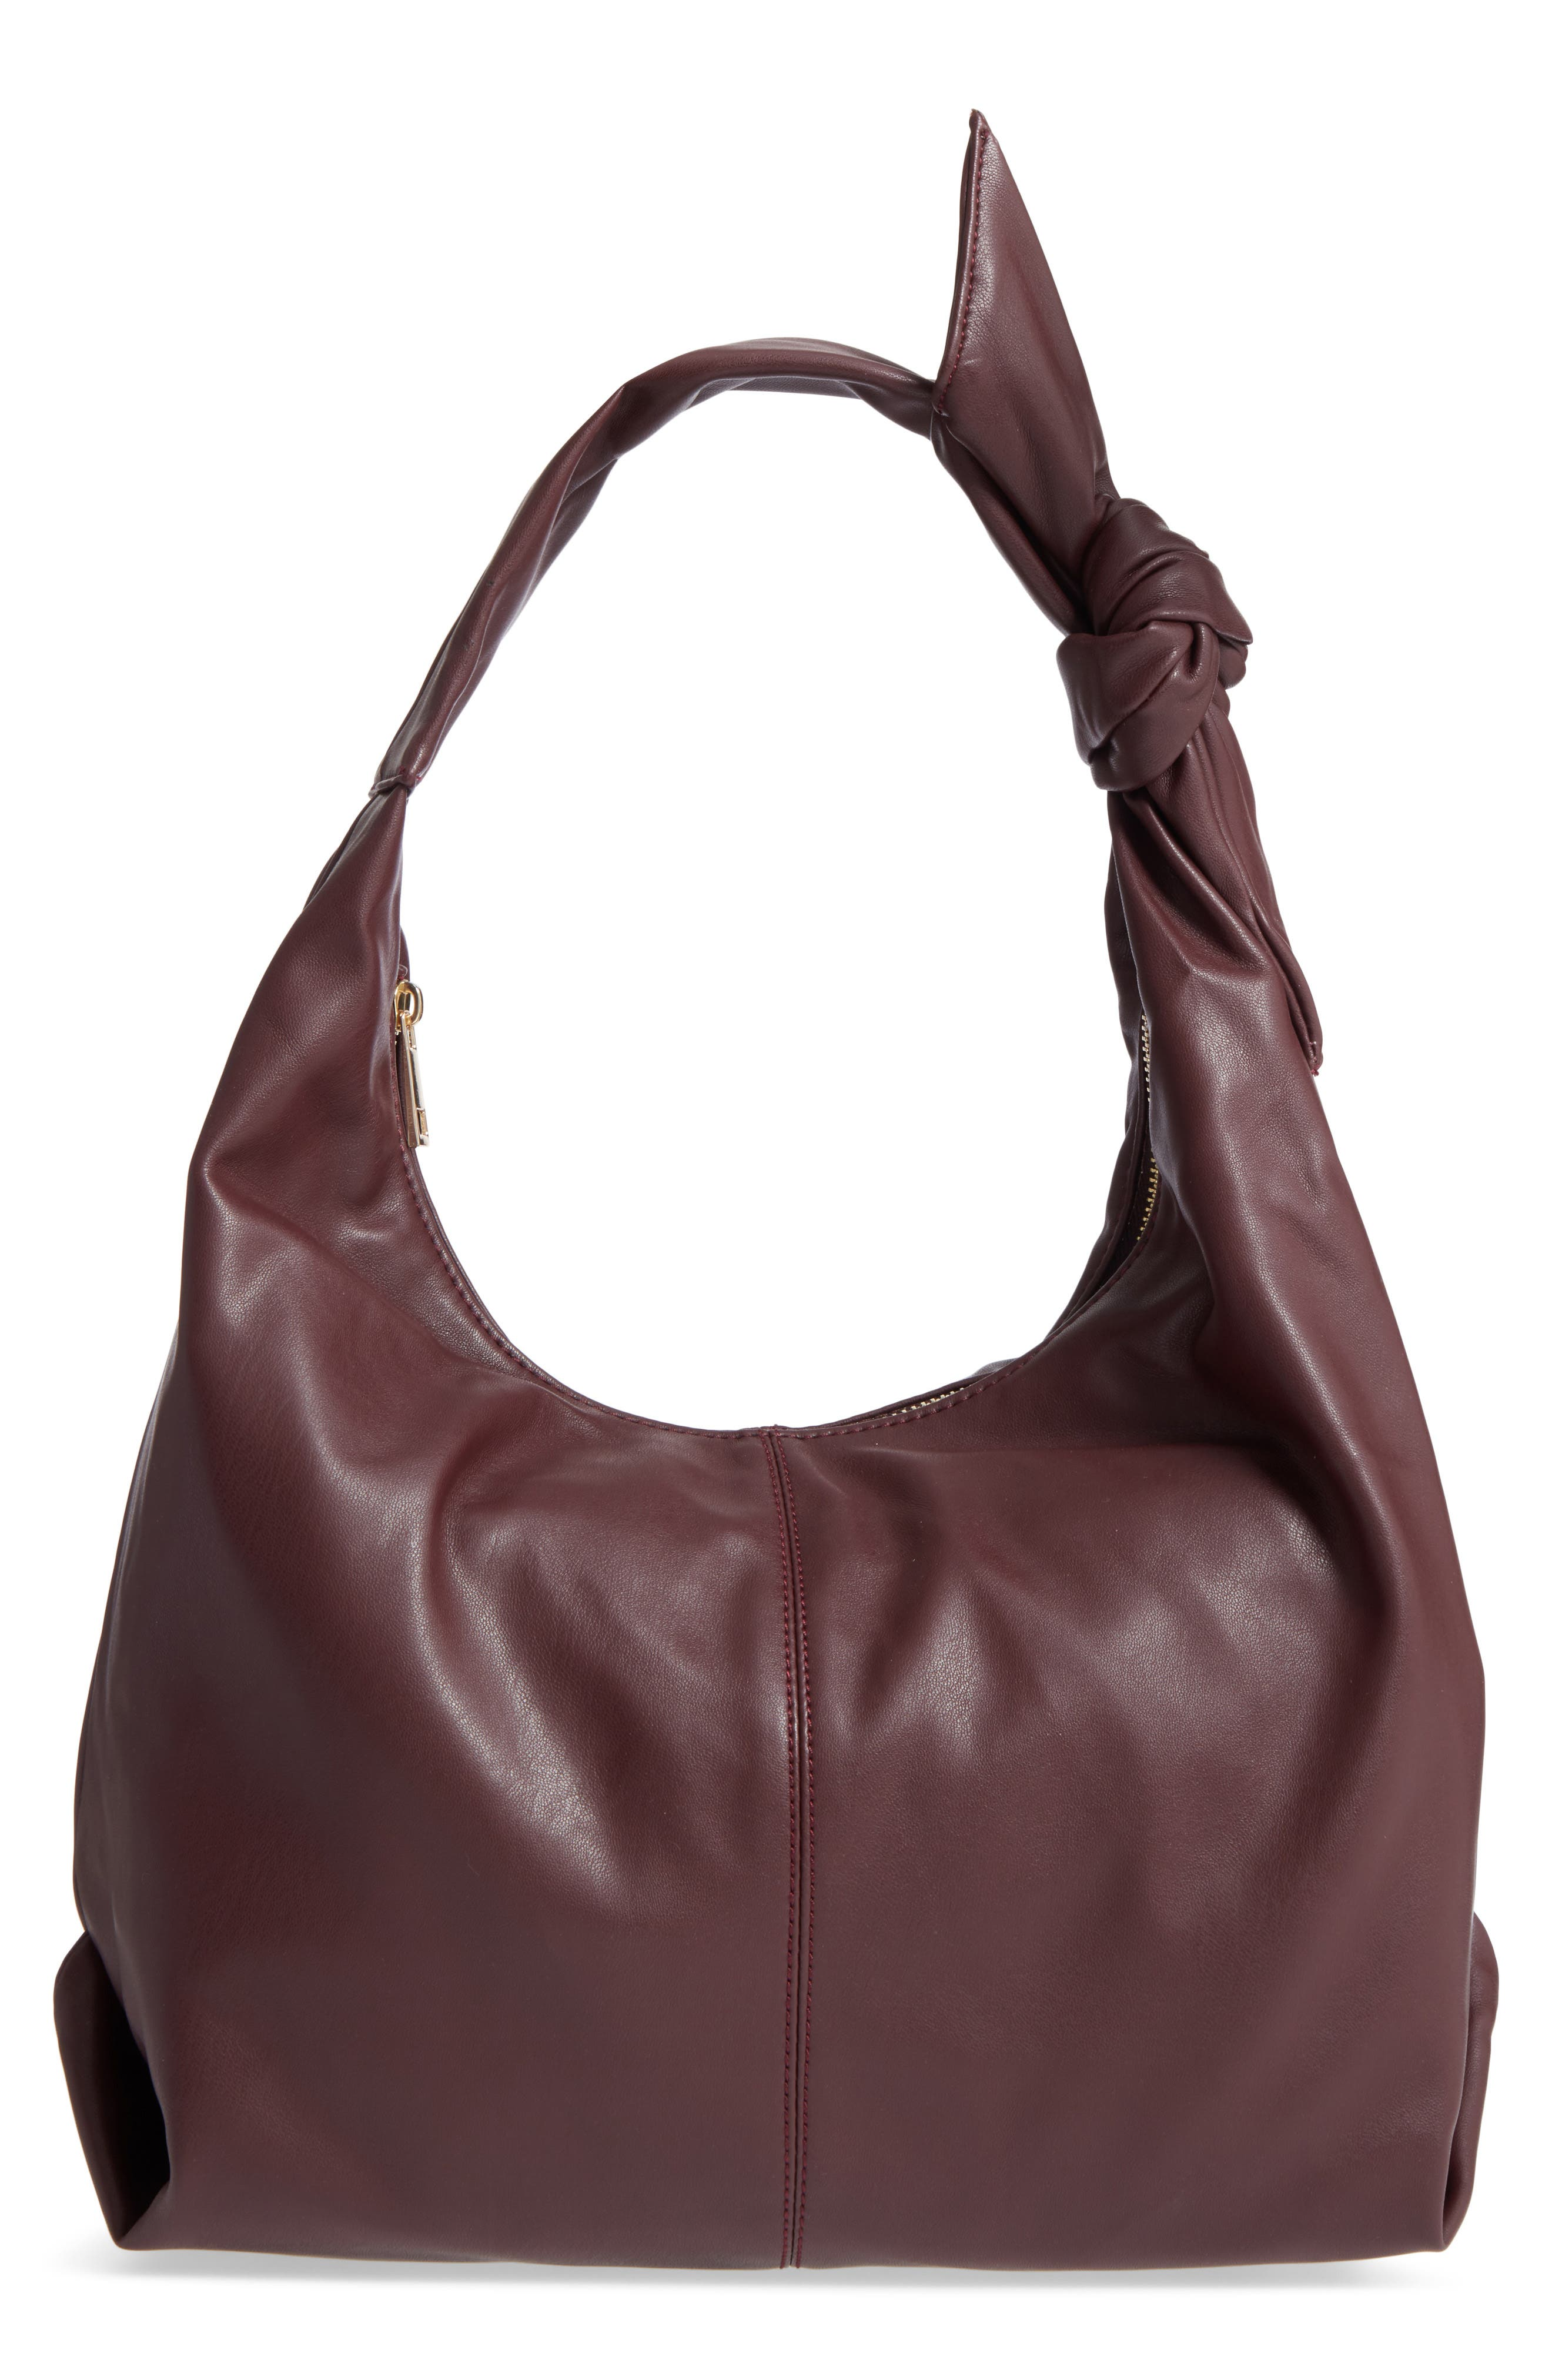 Alternate Image 1 Selected - Sole Society Niki Faux Leather Hobo